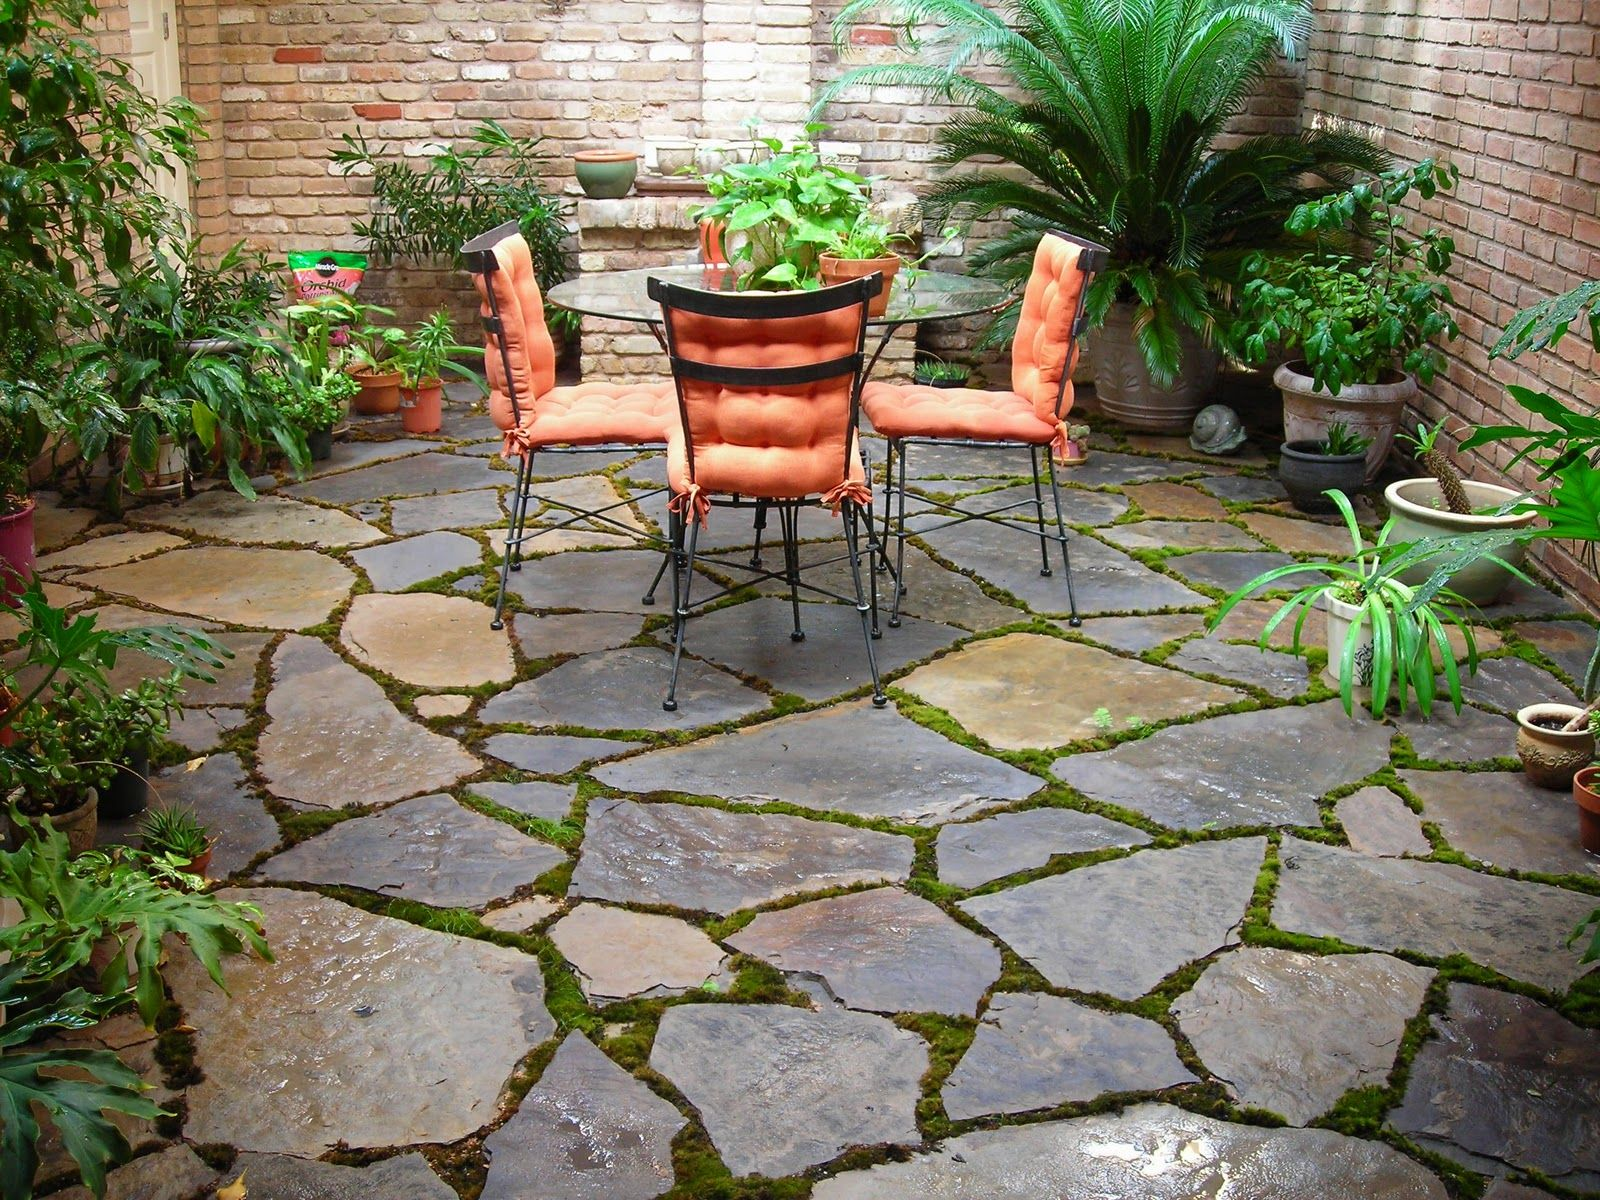 Small Patio Garden Ideas small patio garden ideas india famous interior design Outdoor Small Backyard Landscaping Ideas With Installing Flagstone Patio Stone Backyard Patio Garden Decor Ideas